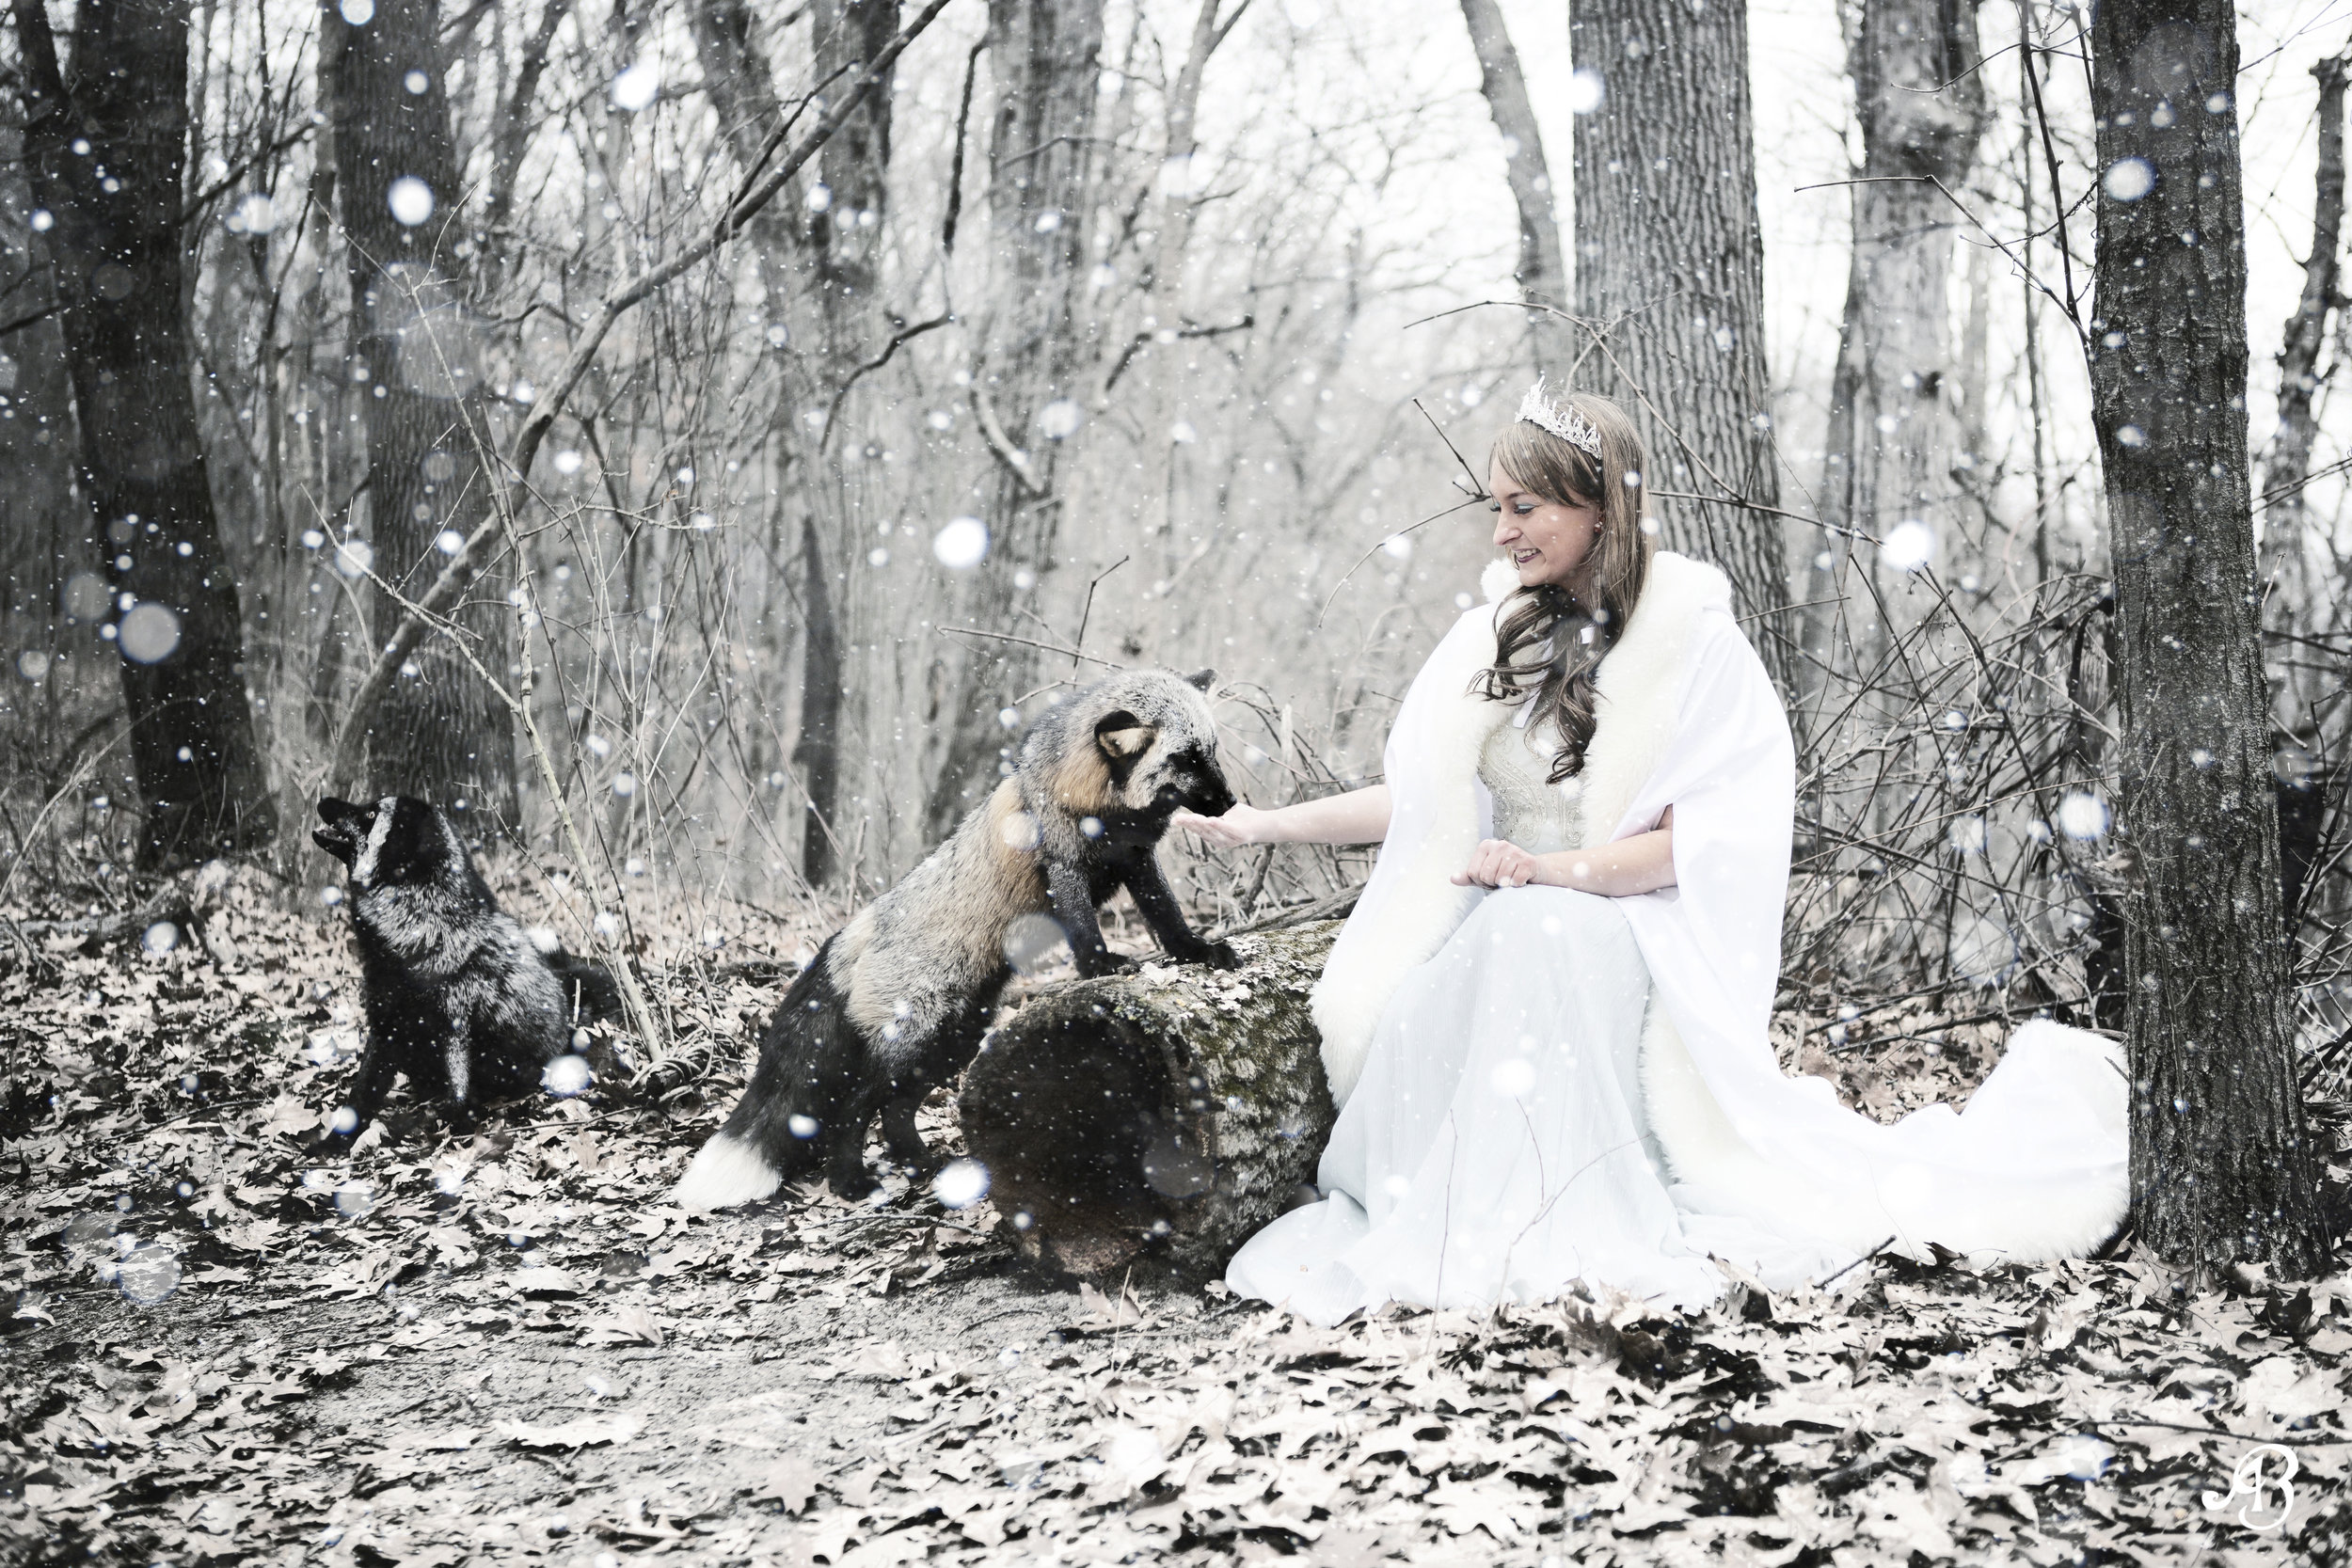 Aimee with Foxes and Snow | Photoshoot with Foxes | Animal Encounters | Alyssia Booth's Candid & Studio | Michigan Photographer | Fantasy Photoshoots | www.abcandidstudio.com